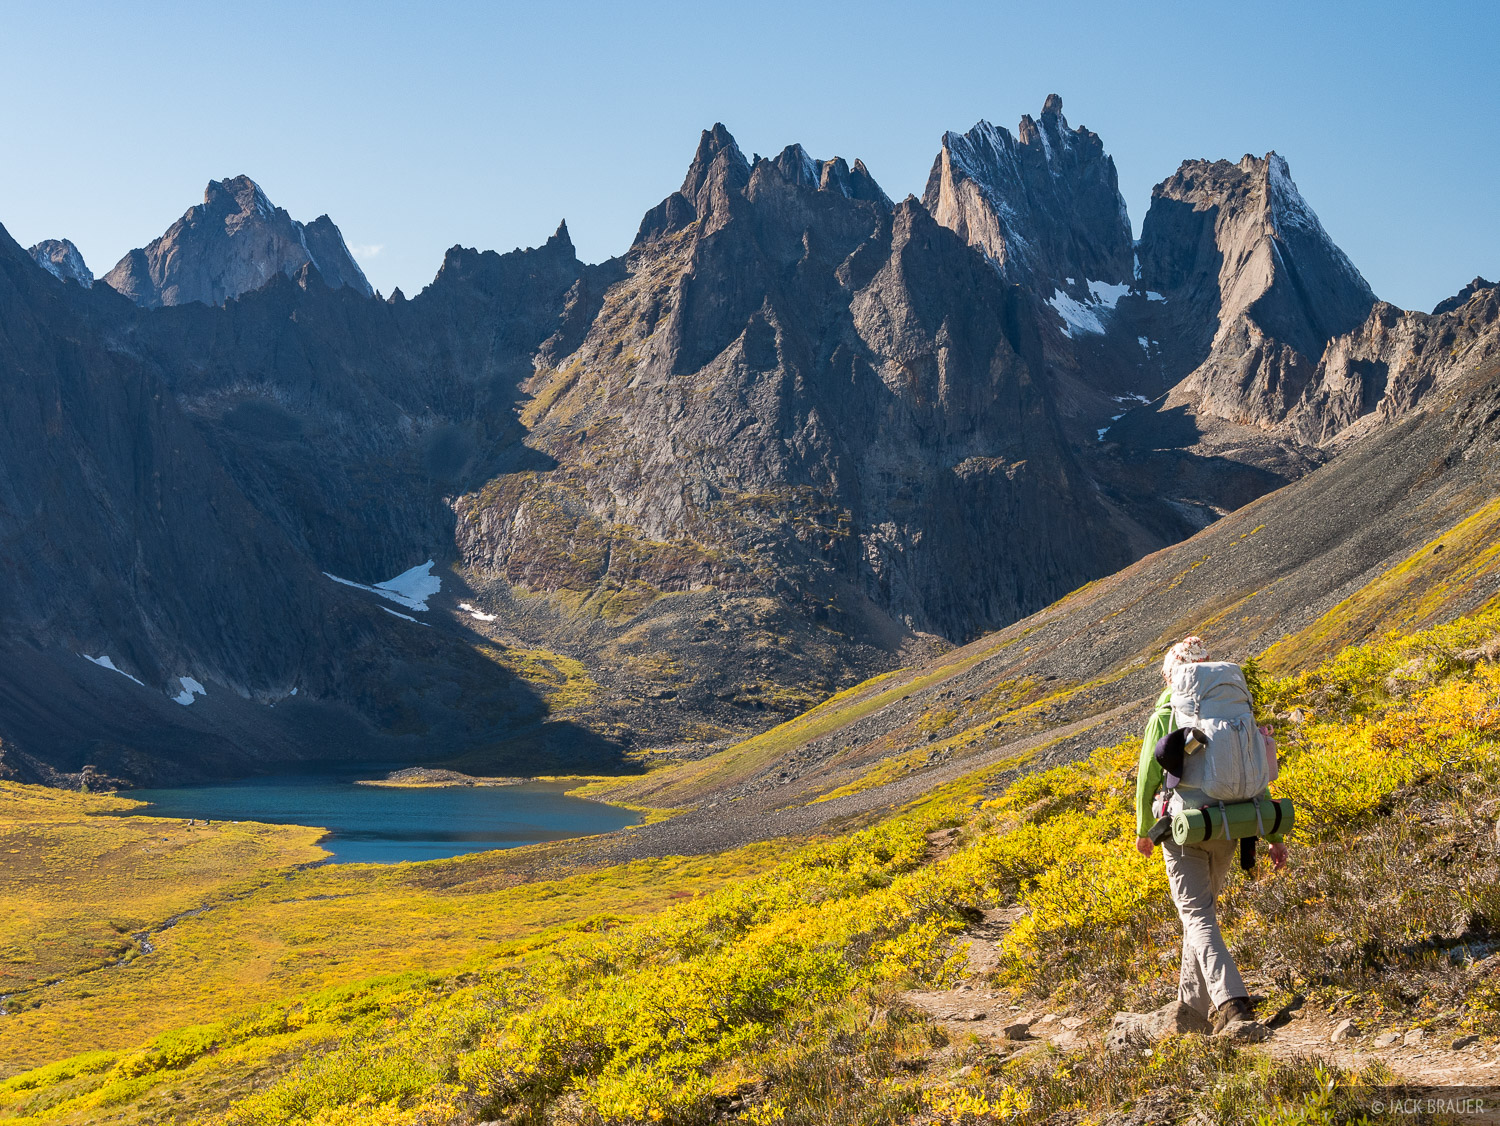 Canada, Grizzly Lake, Mount Monolith, Tombstone Territorial Park, Yukon, hiking, Tombstone Range, photo